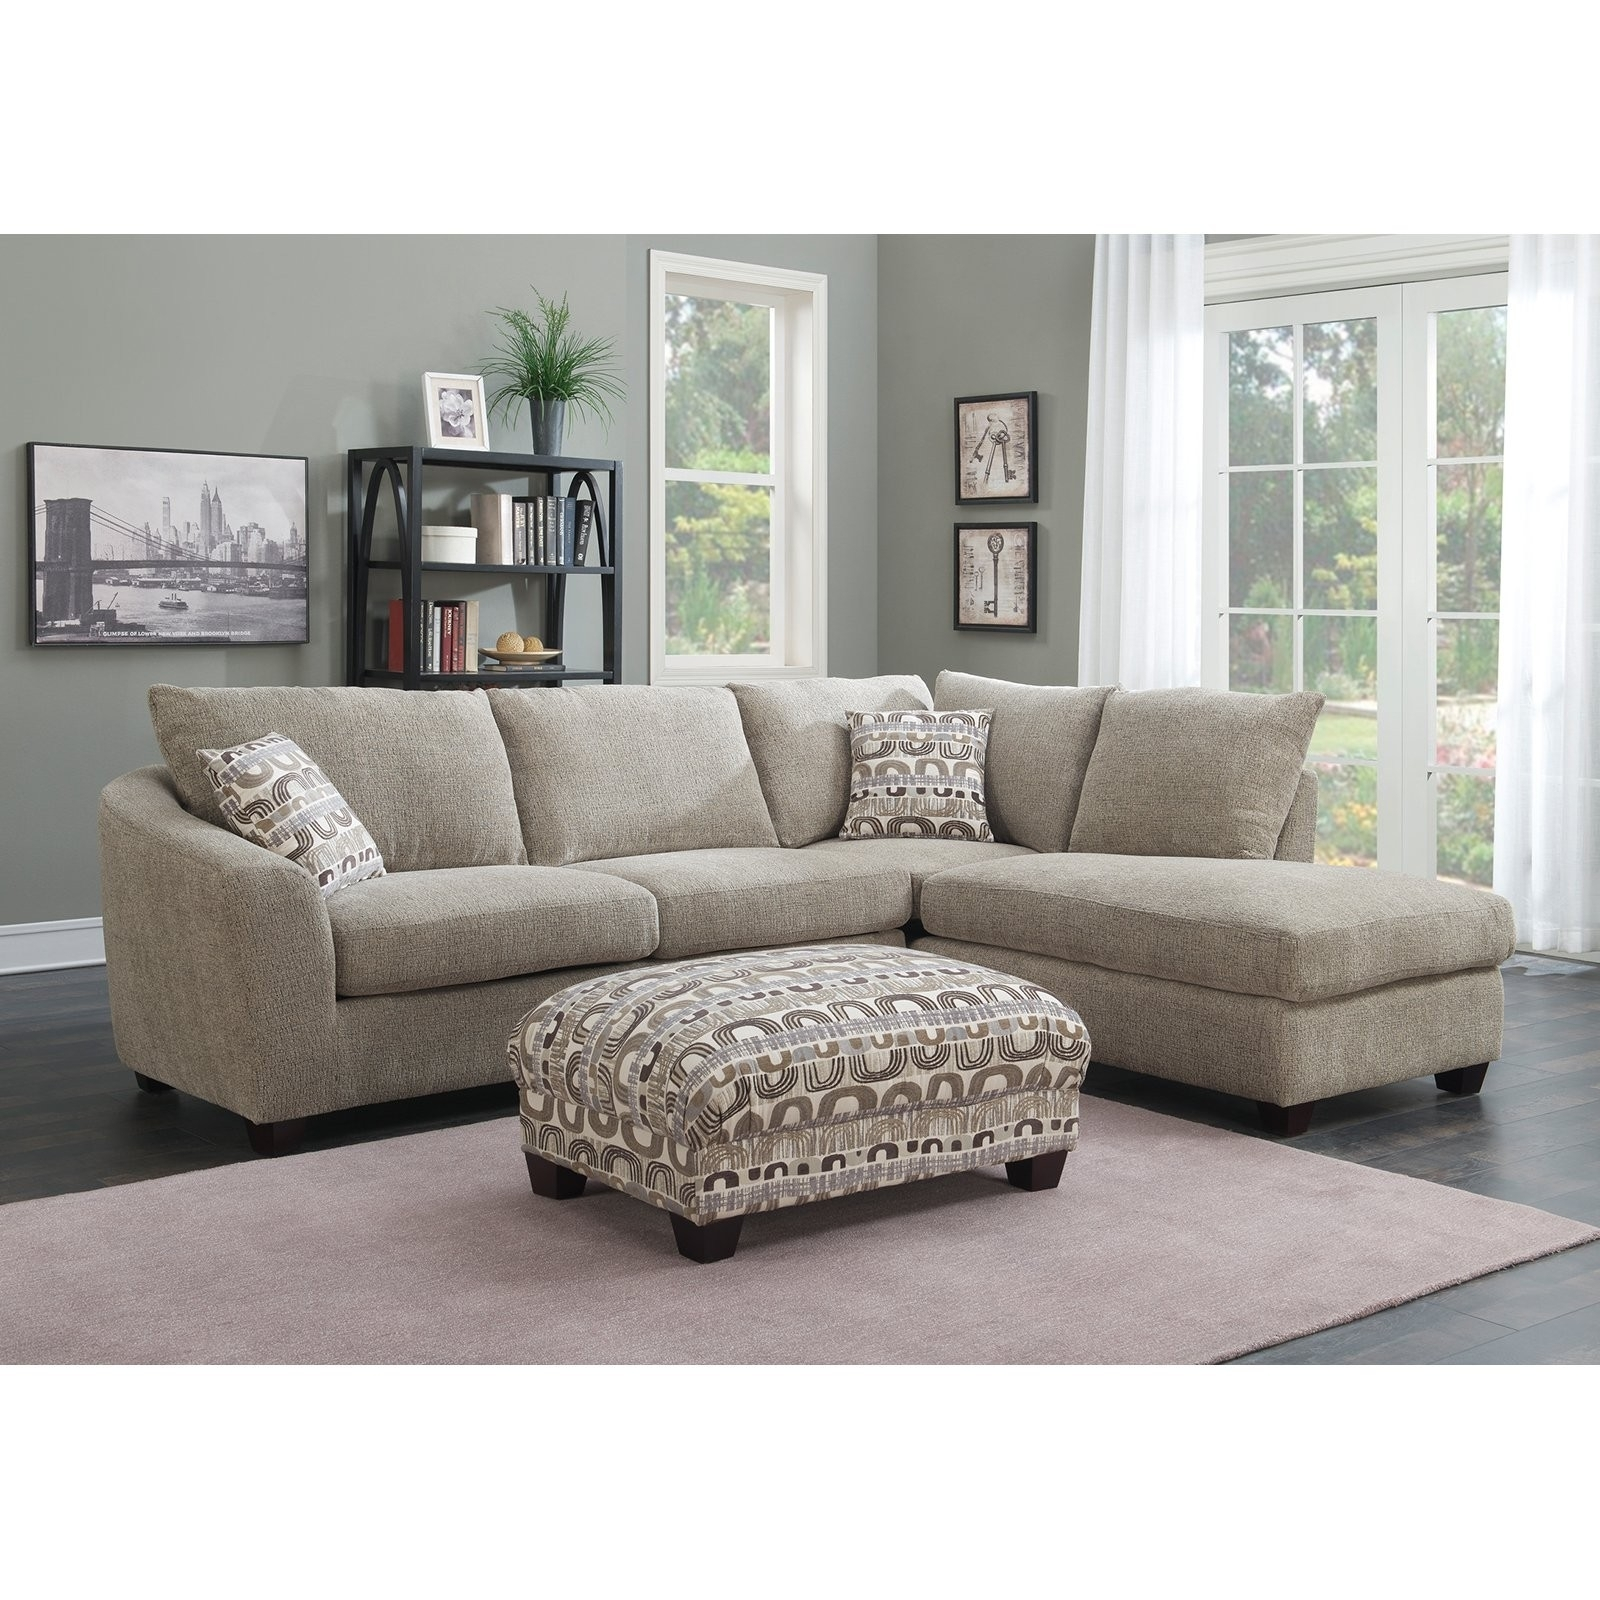 2 Piece Sectional With Chaise Urban Small West Elm C Regarding Avery 2 Piece Sectionals With Laf Armless Chaise (Gallery 20 of 30)